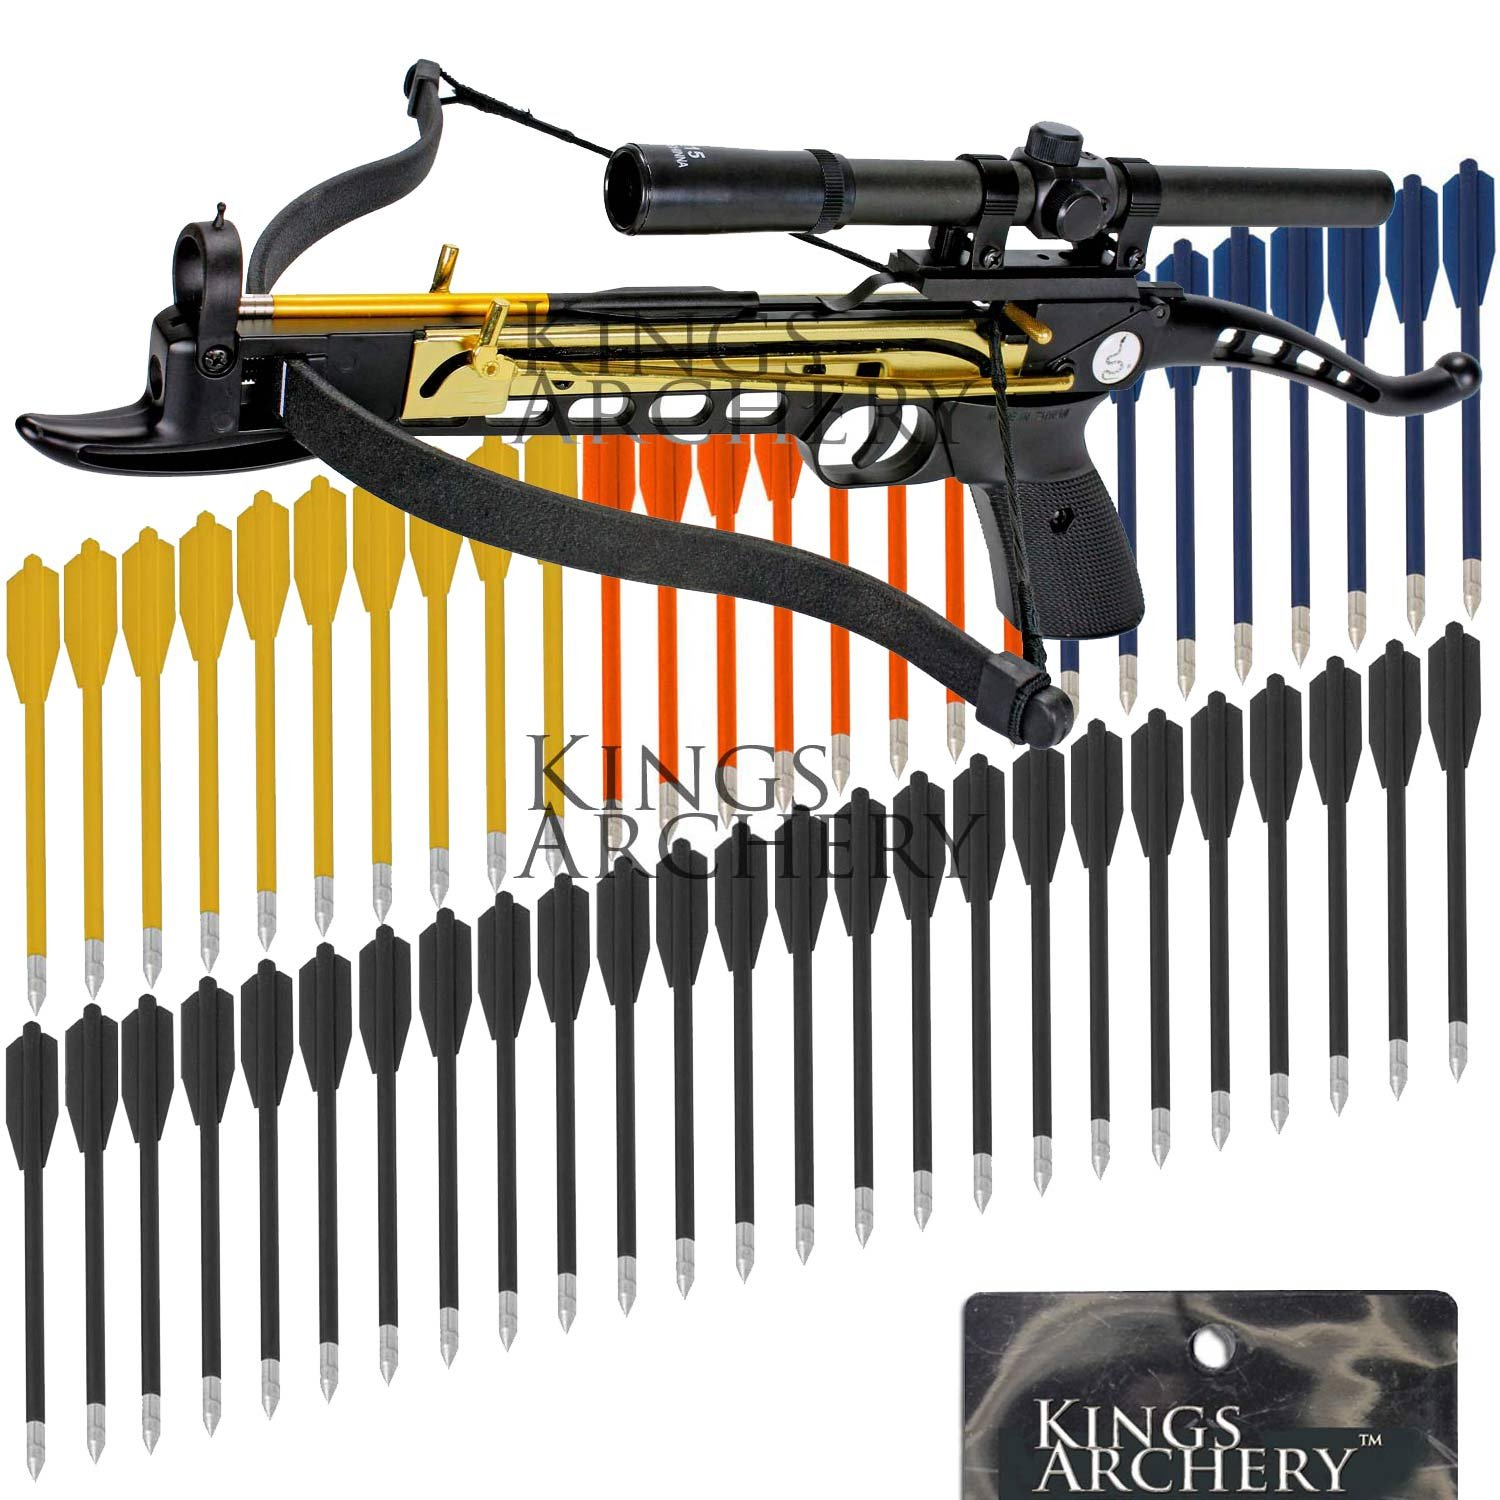 Crossbow Self-Cocking 80 LBS by KingsArchery® with Hunting Scope, 3 Aluminium Arrow Bolts, and Bonus 60-pack of Colored PVC Arrow Bolts + KingsArchery® Warranty